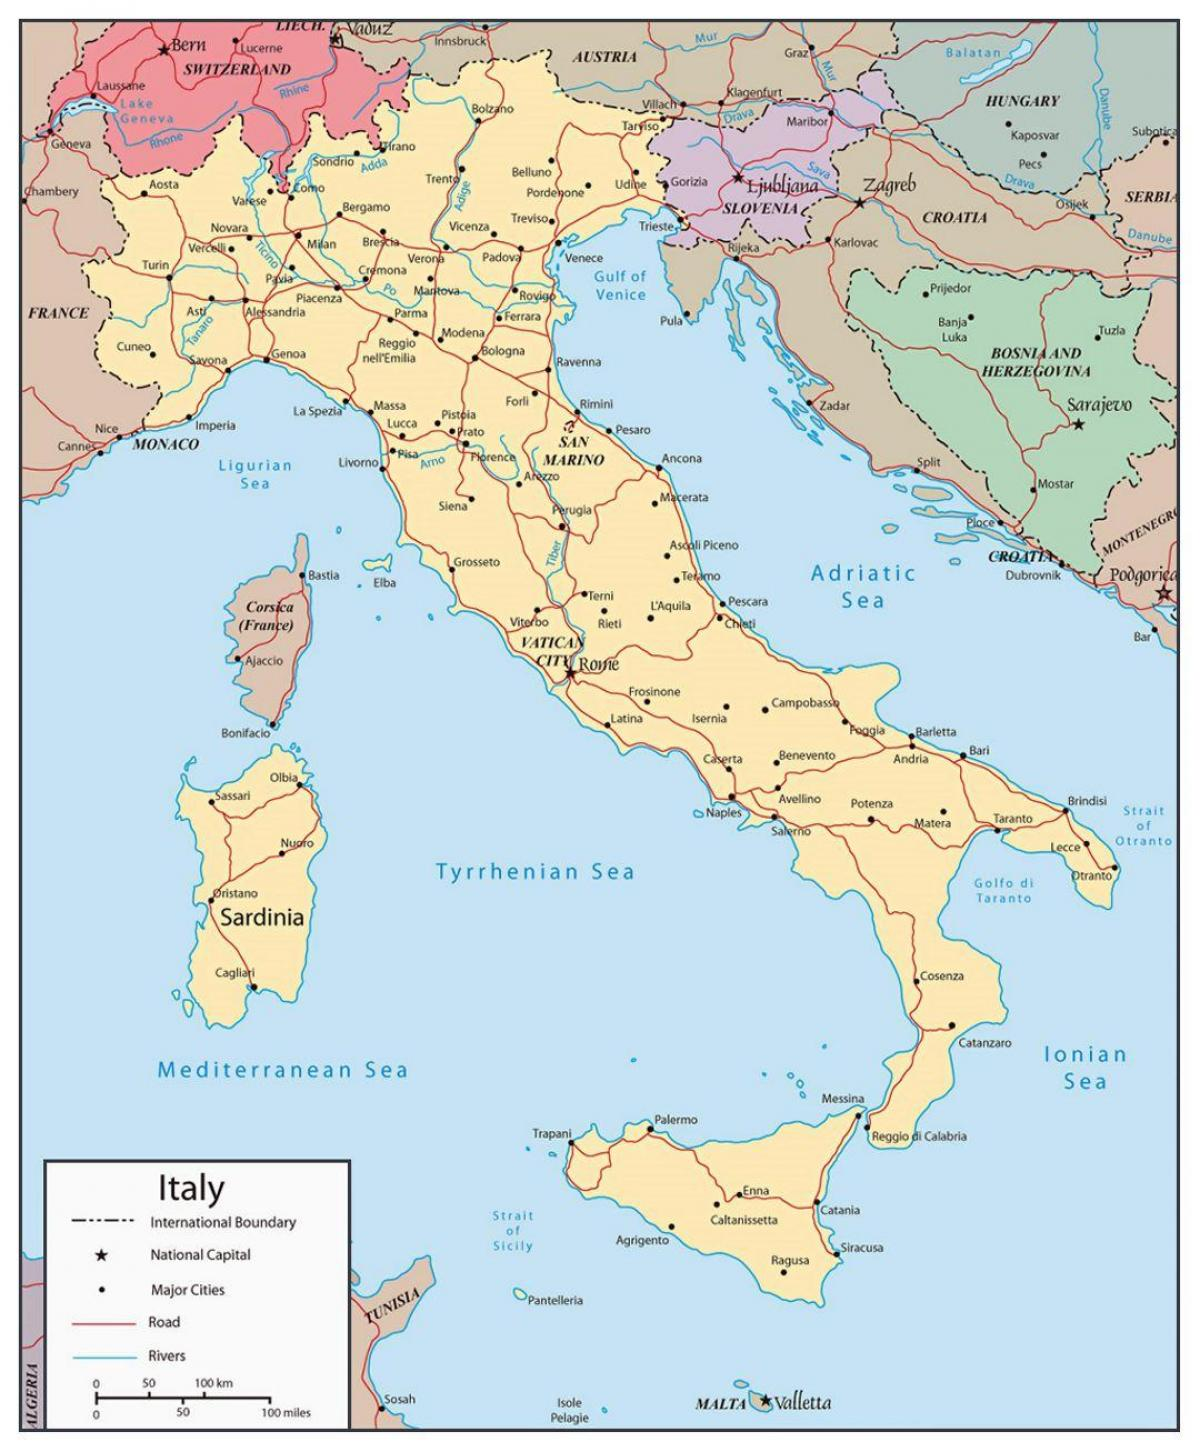 map of Italy showing major cities